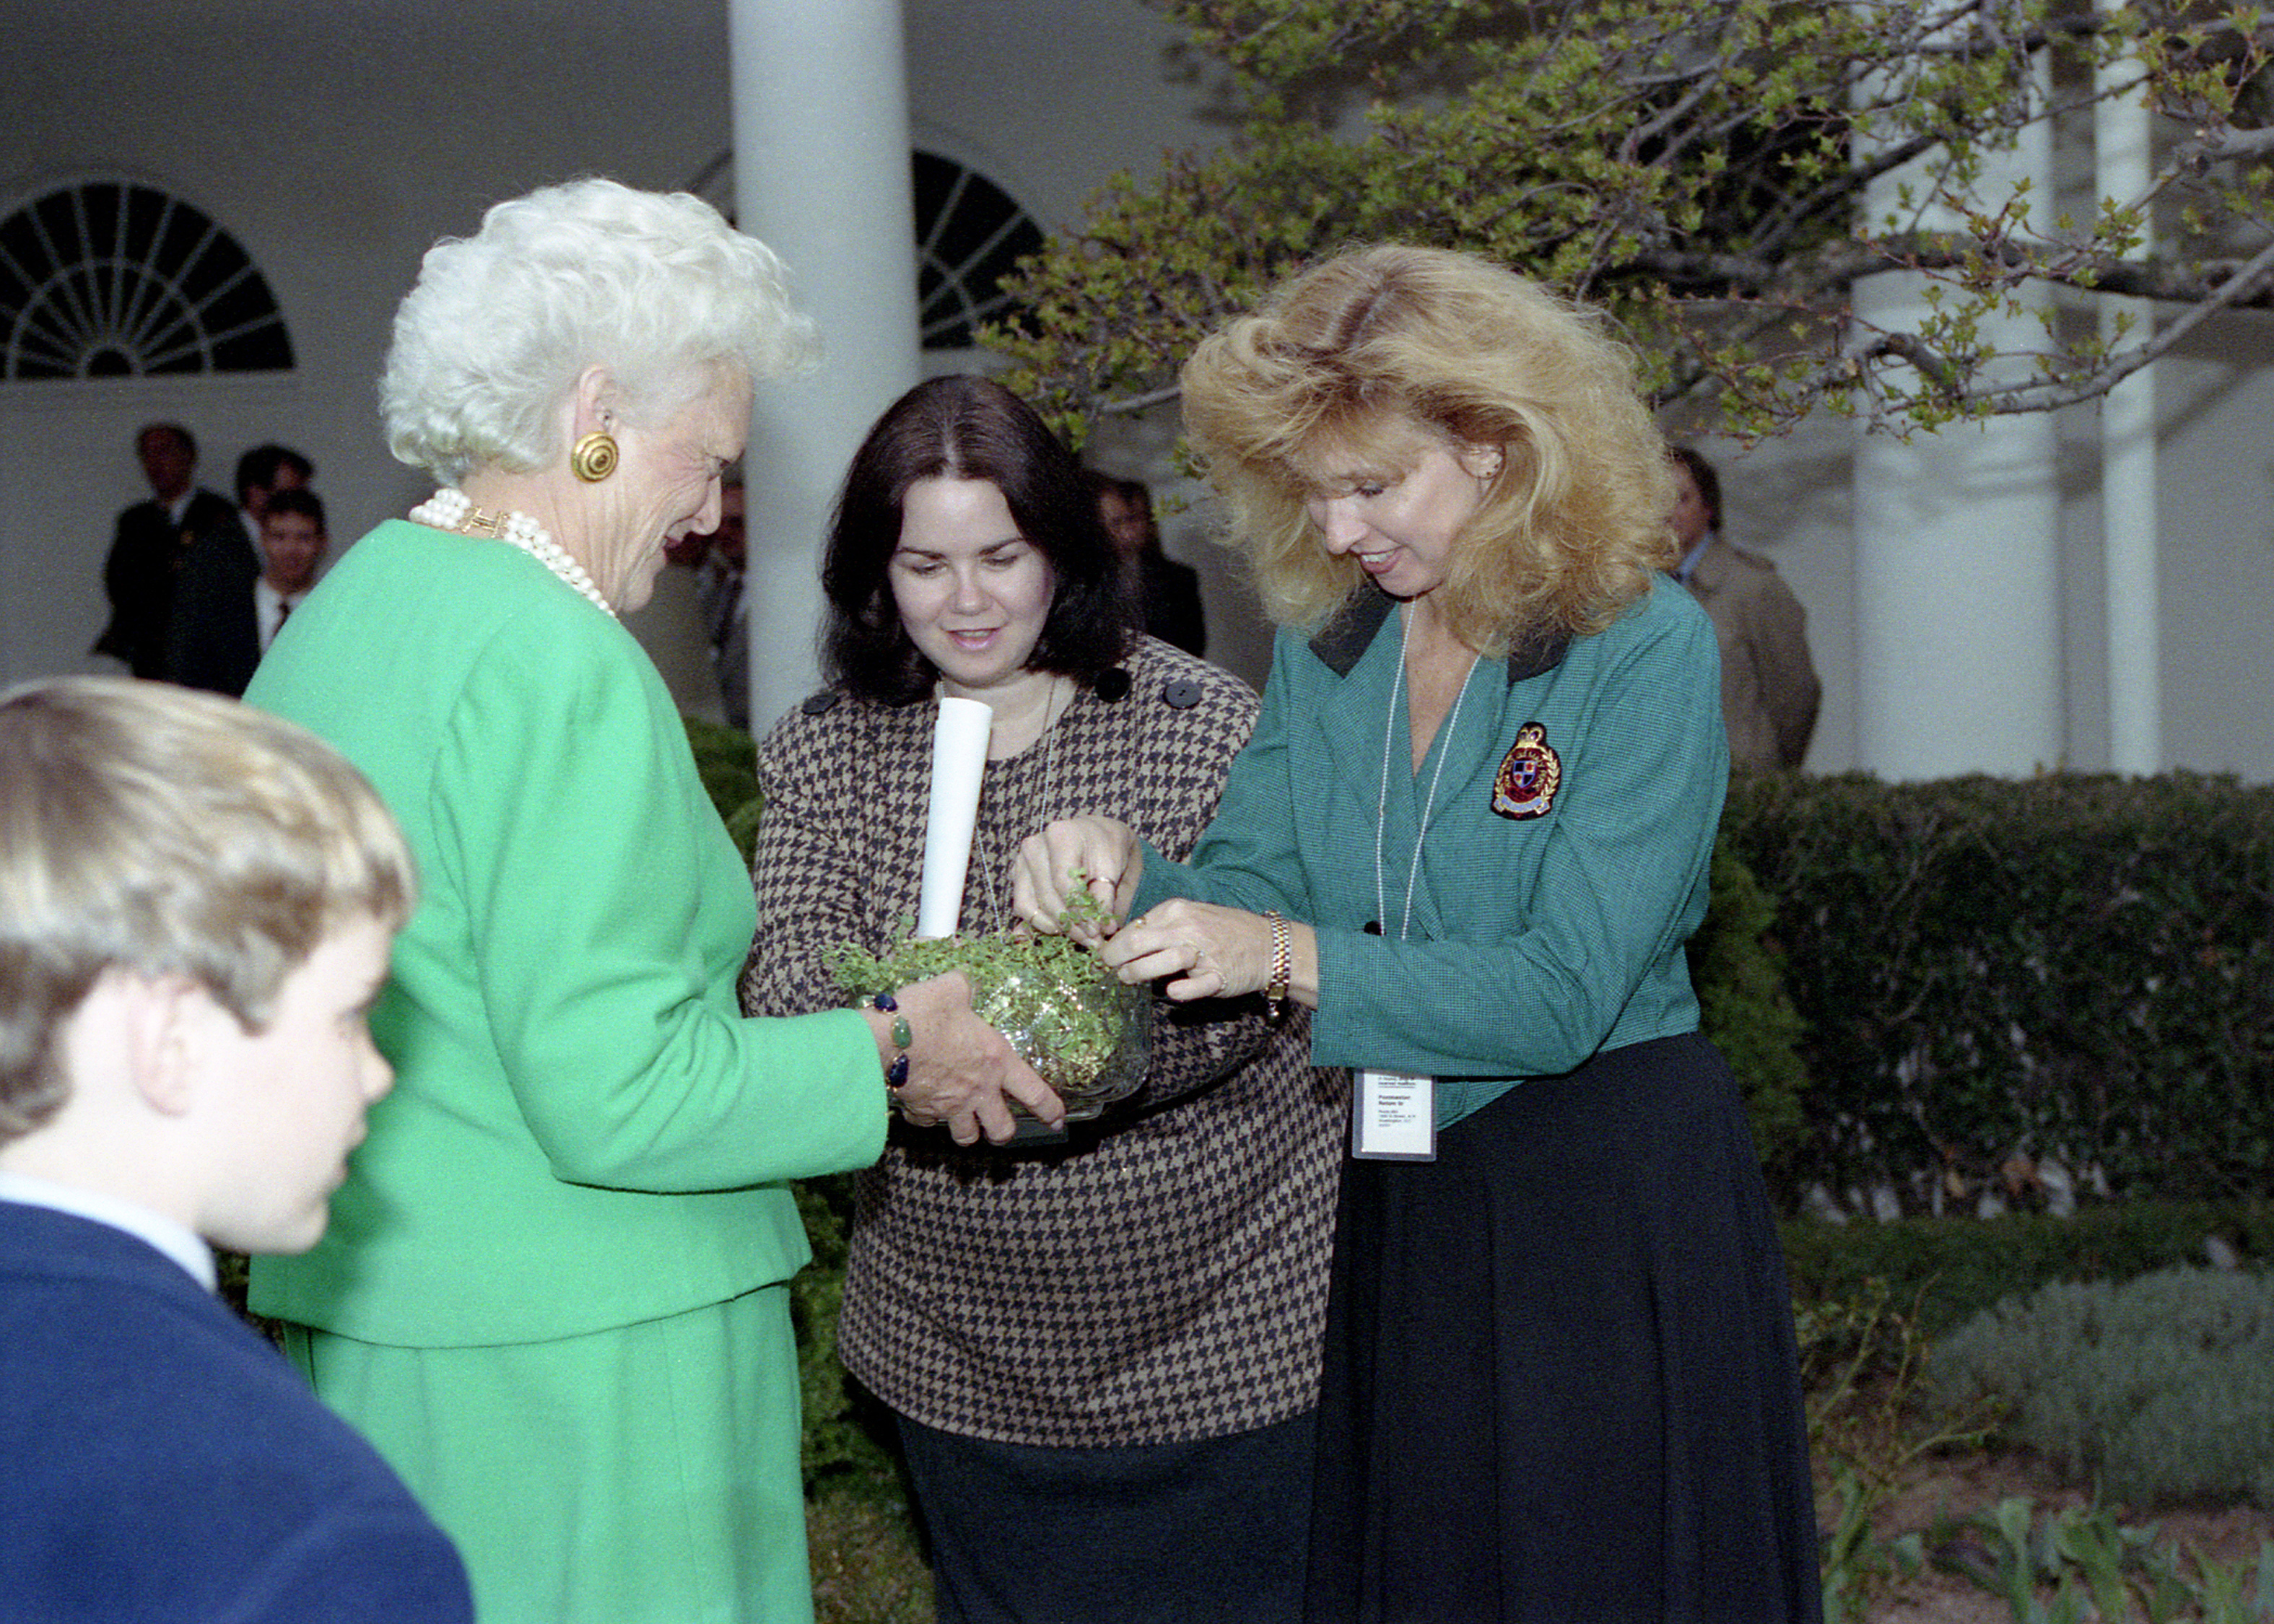 Mrs. Bush Participates in a the Presentation of Shamrocks in Honor of St. Patrick's Day